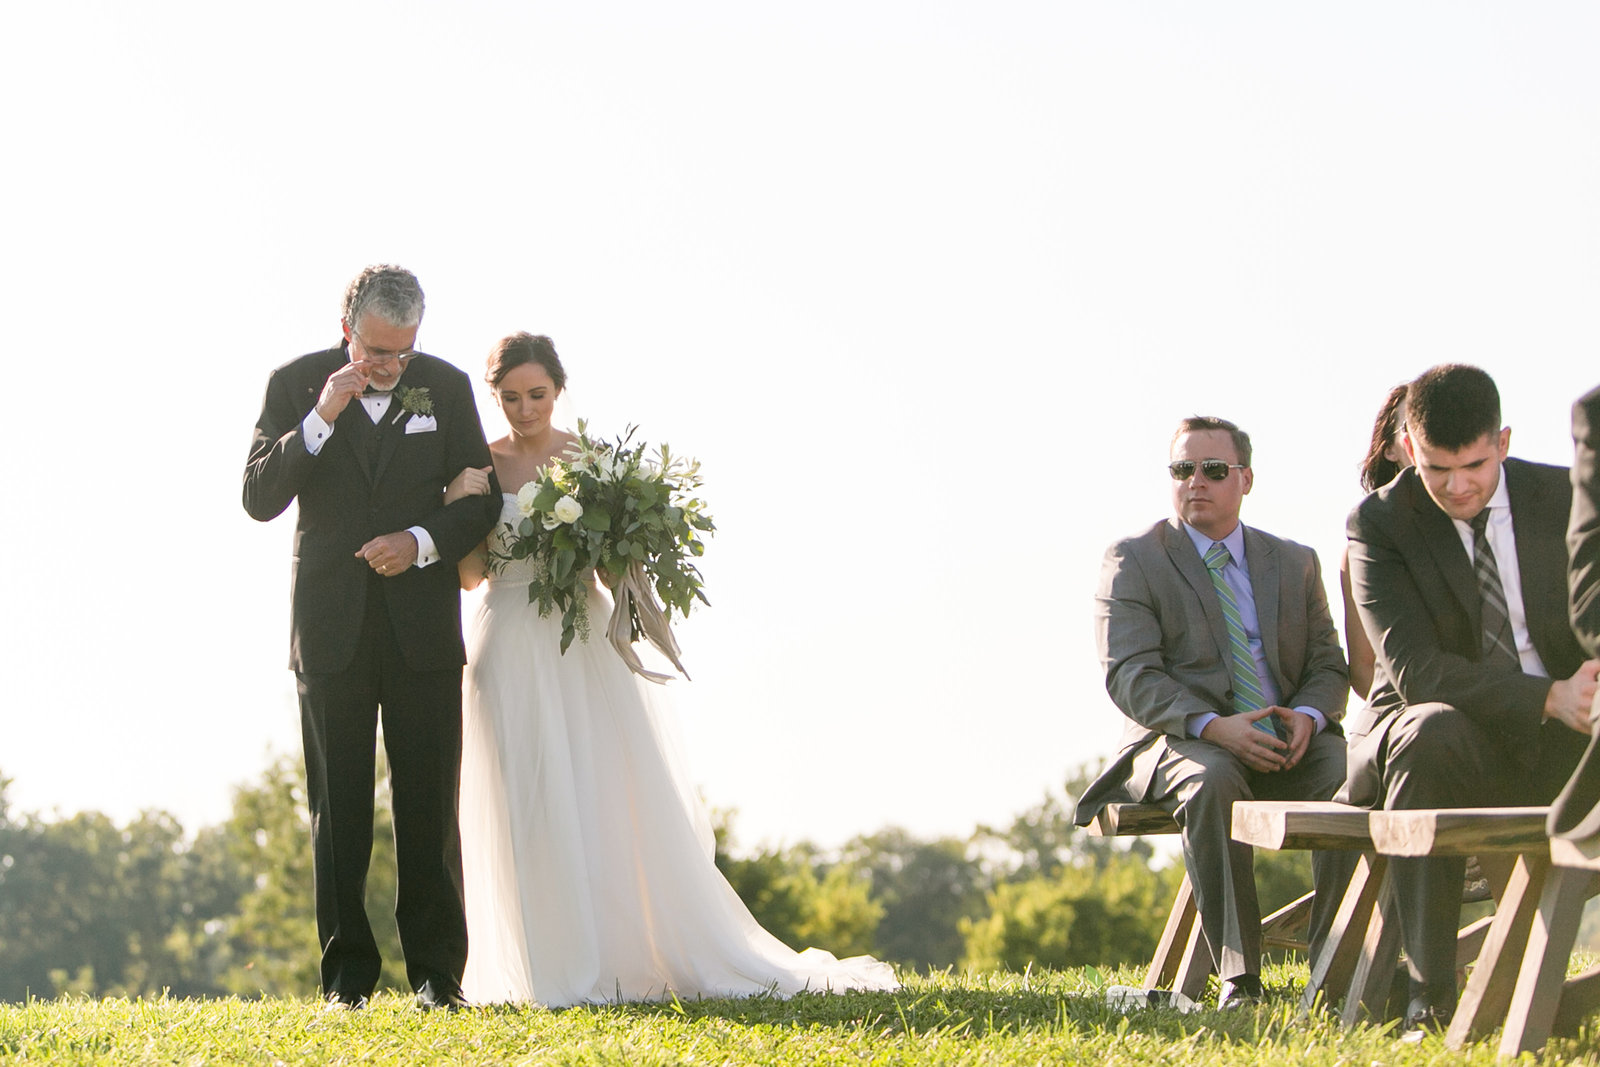 Kansas_City_Wedding_Planner_Madison_Sanders_Weston_Timber_Barn_Greenery-0066